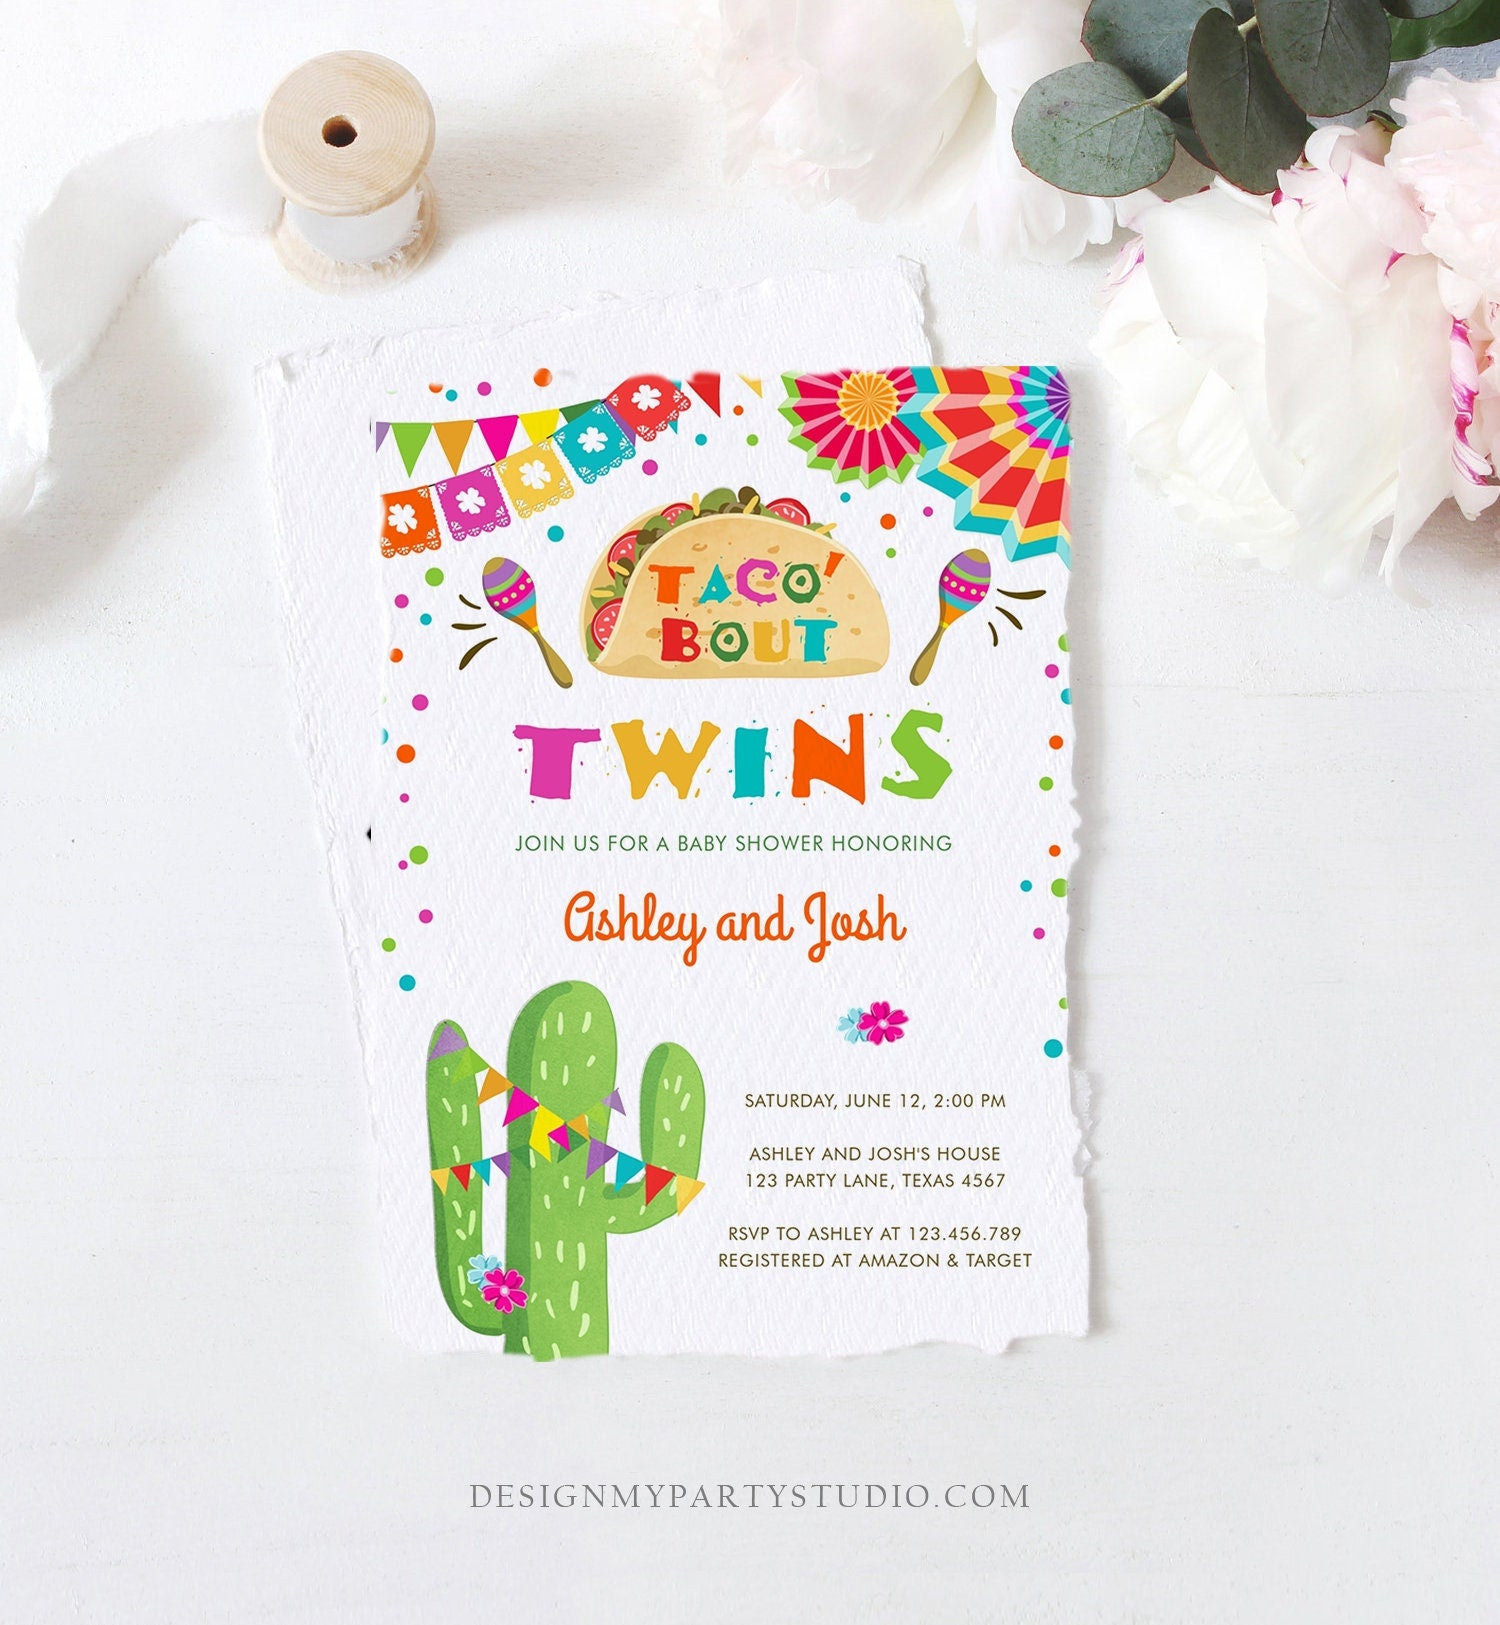 Editable Taco Bout Twins Baby Shower Invitation Cactus Chalk Mexican Fiesta Couples Shower Instant Download Printable Corjl Template 0045